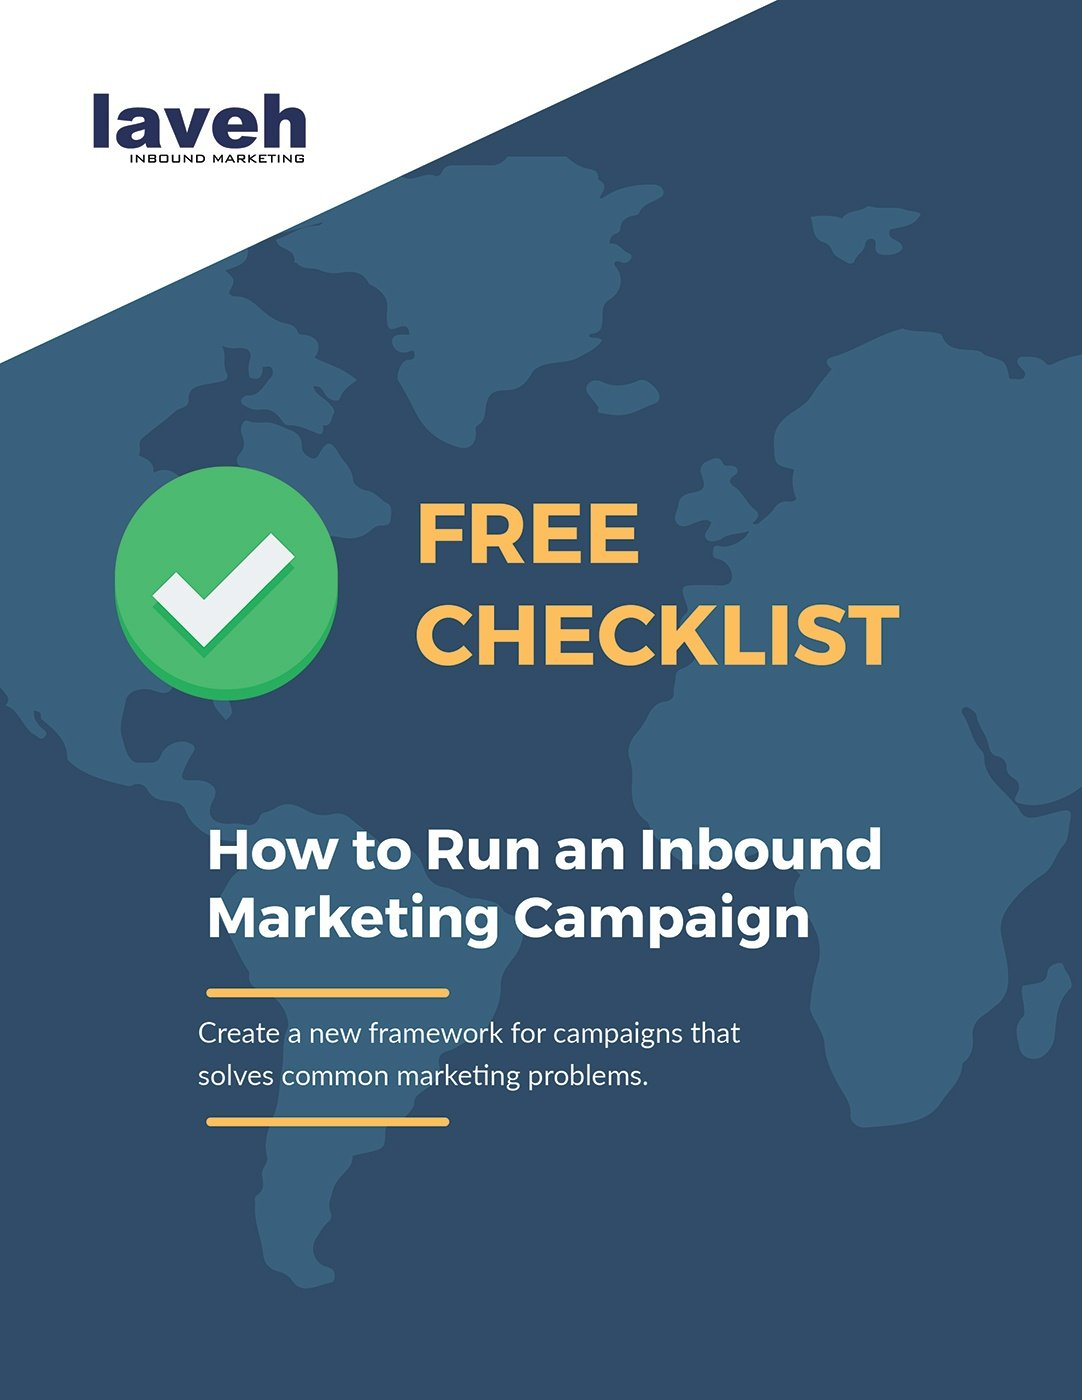 Free-Checklist-How-to-Run-an-Inbound-Marketing-Campaign.jpg